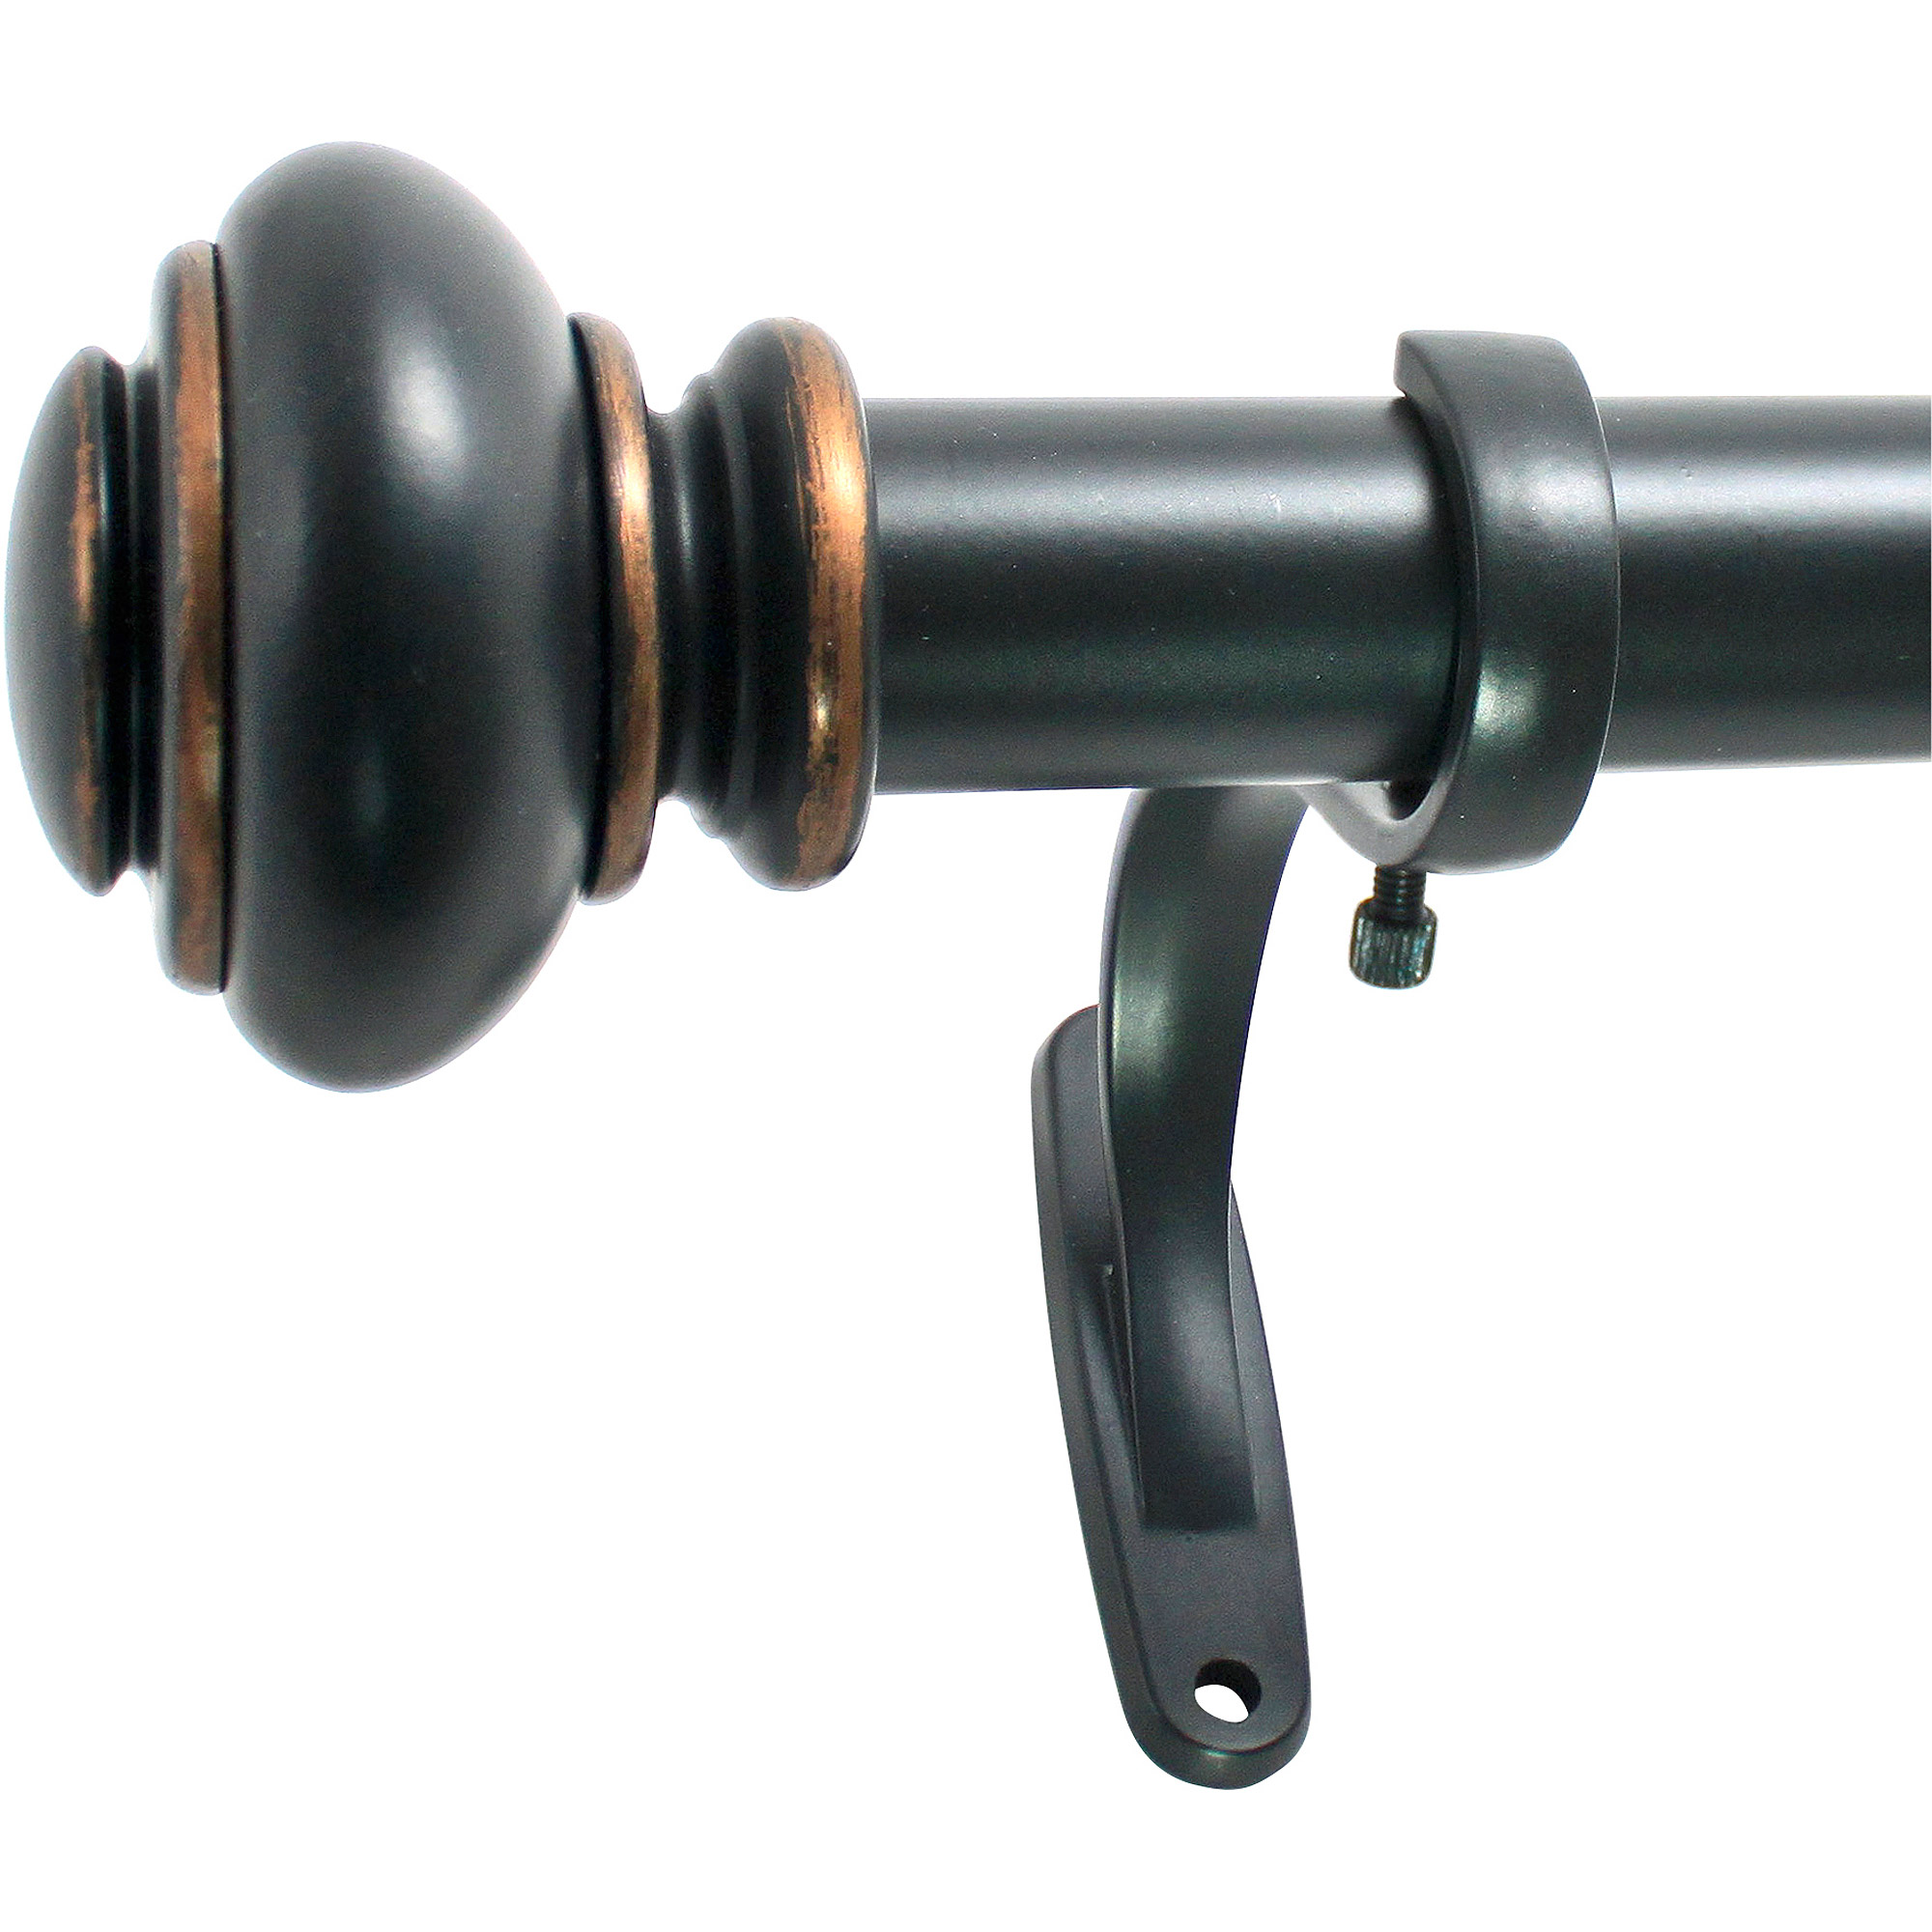 Decopolitan 1 Inch Urn Curtain Rod Set